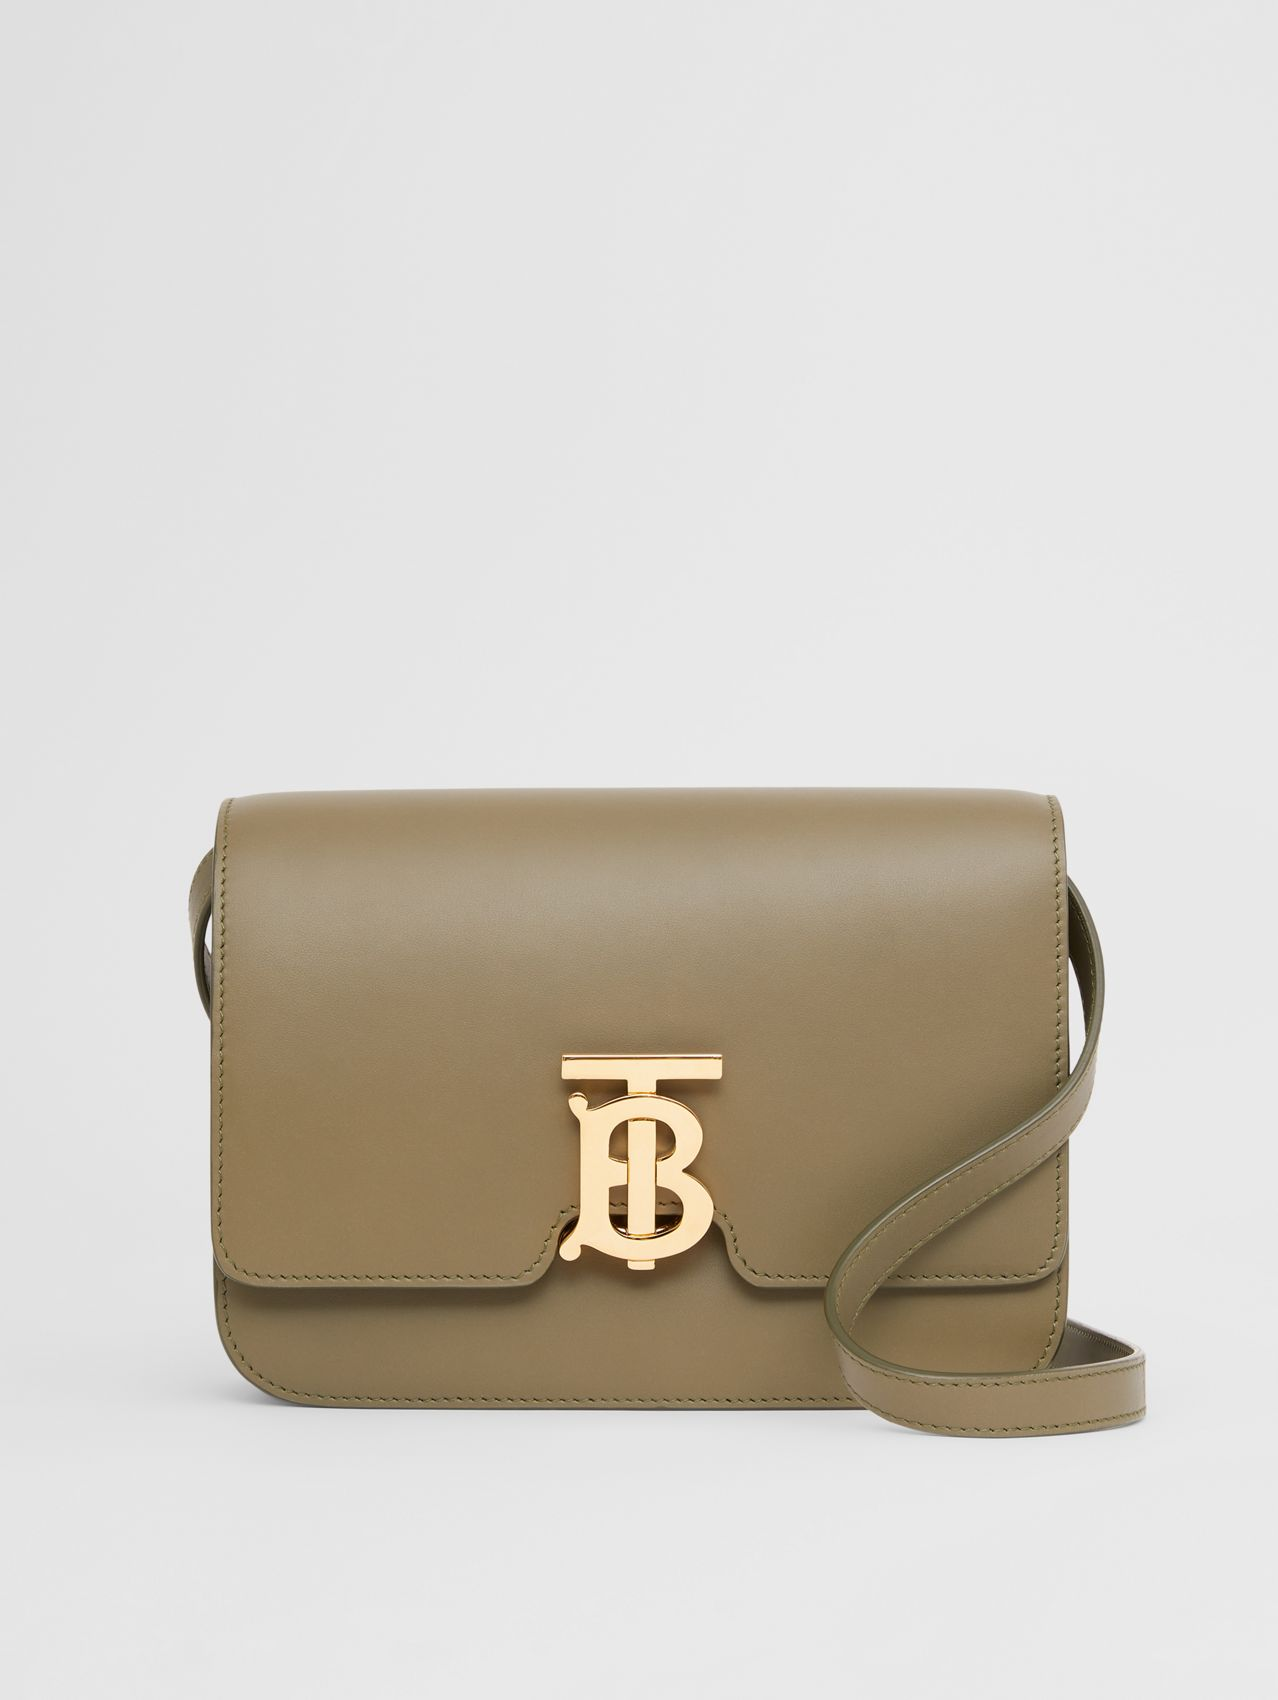 Small Leather TB Bag in Dark Fern Green